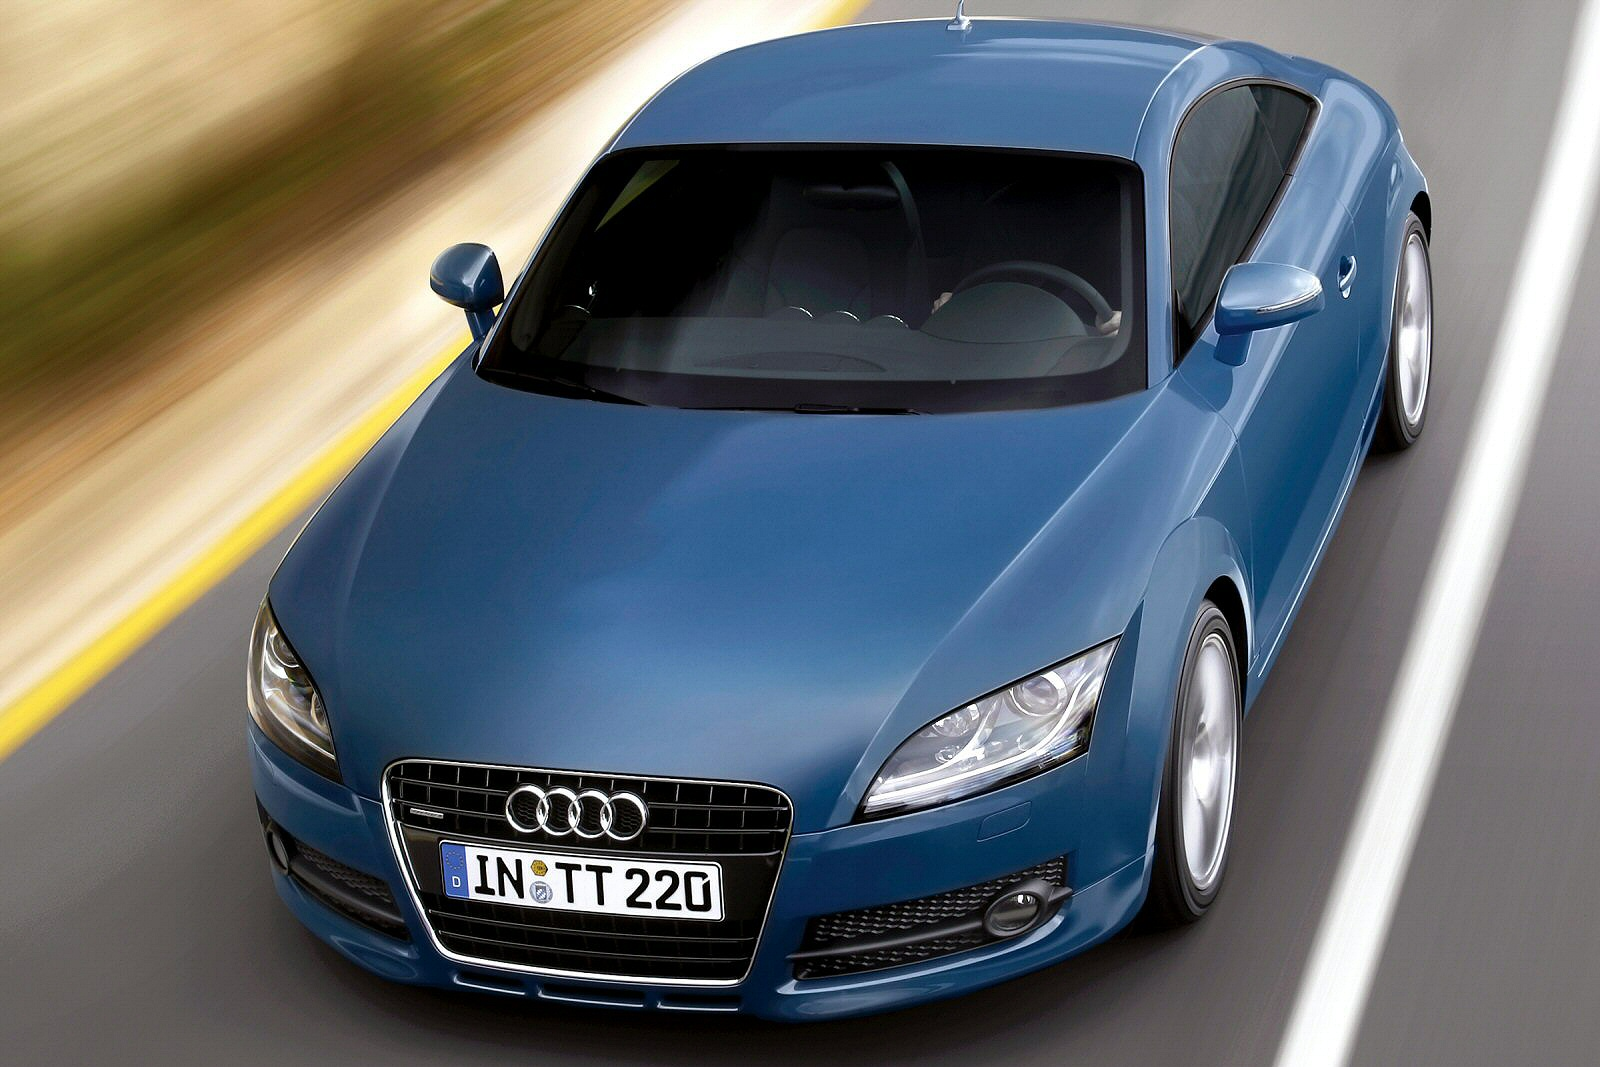 Image three of a Audi TT 2.0 TDI quattro